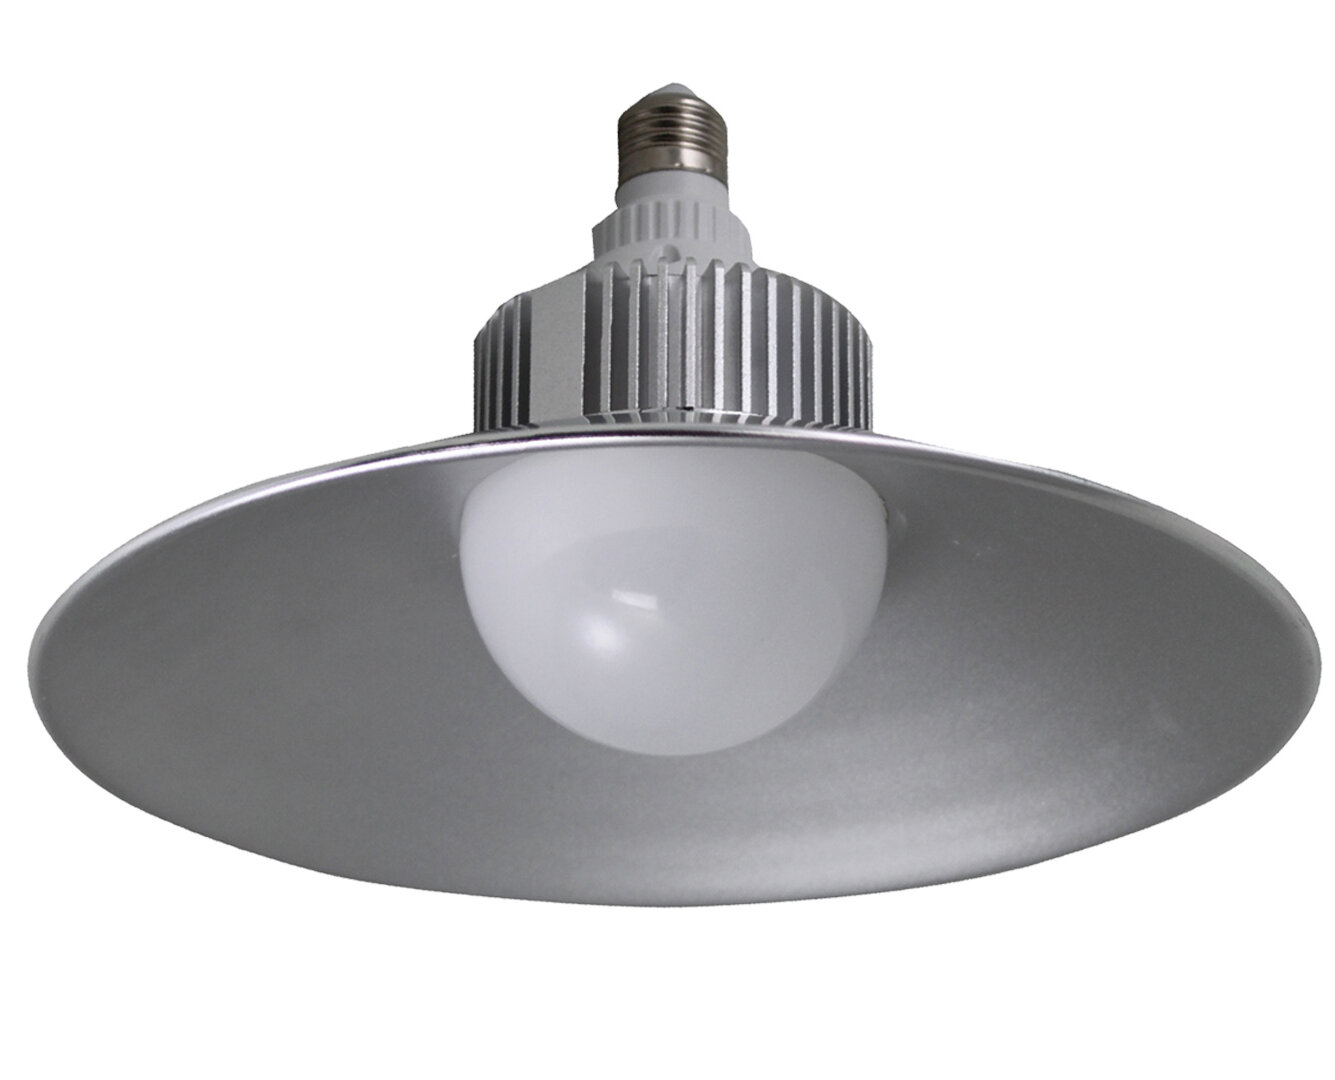 Dining Rooms /& Offices 4000K Natural White - Kitchens Biard 10W LED Dimmable White Single Circuit Track Light Hallways